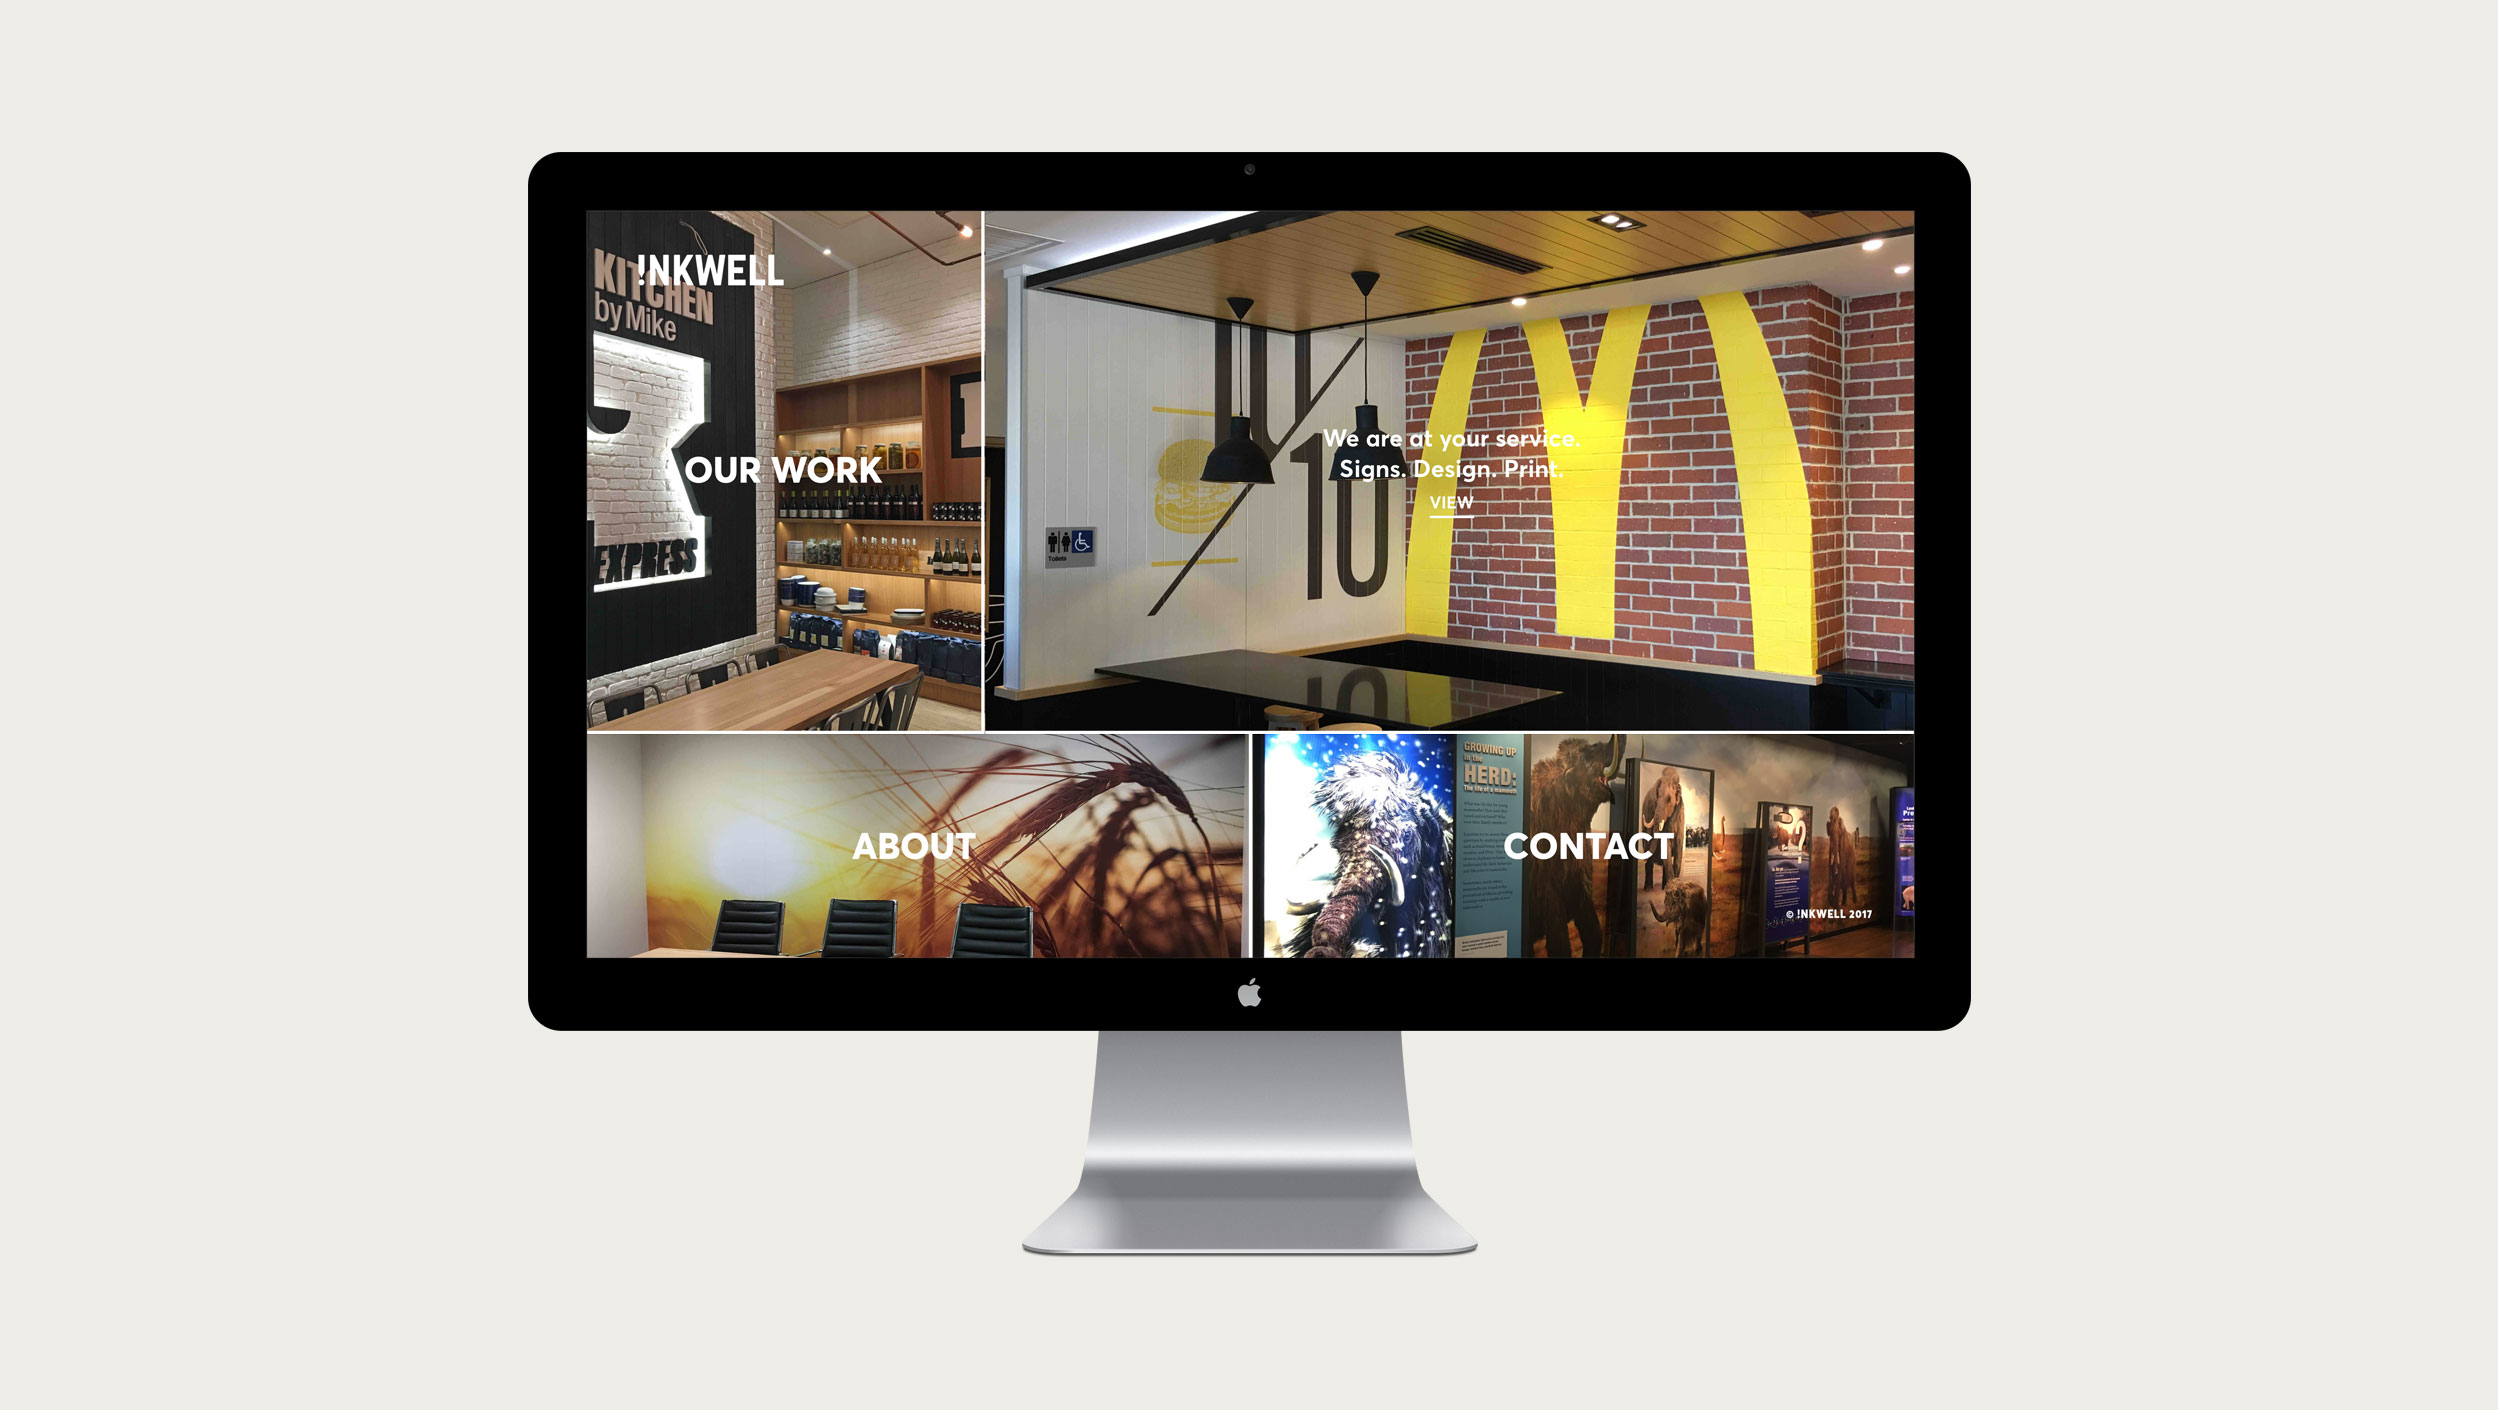 inkwell brand and website